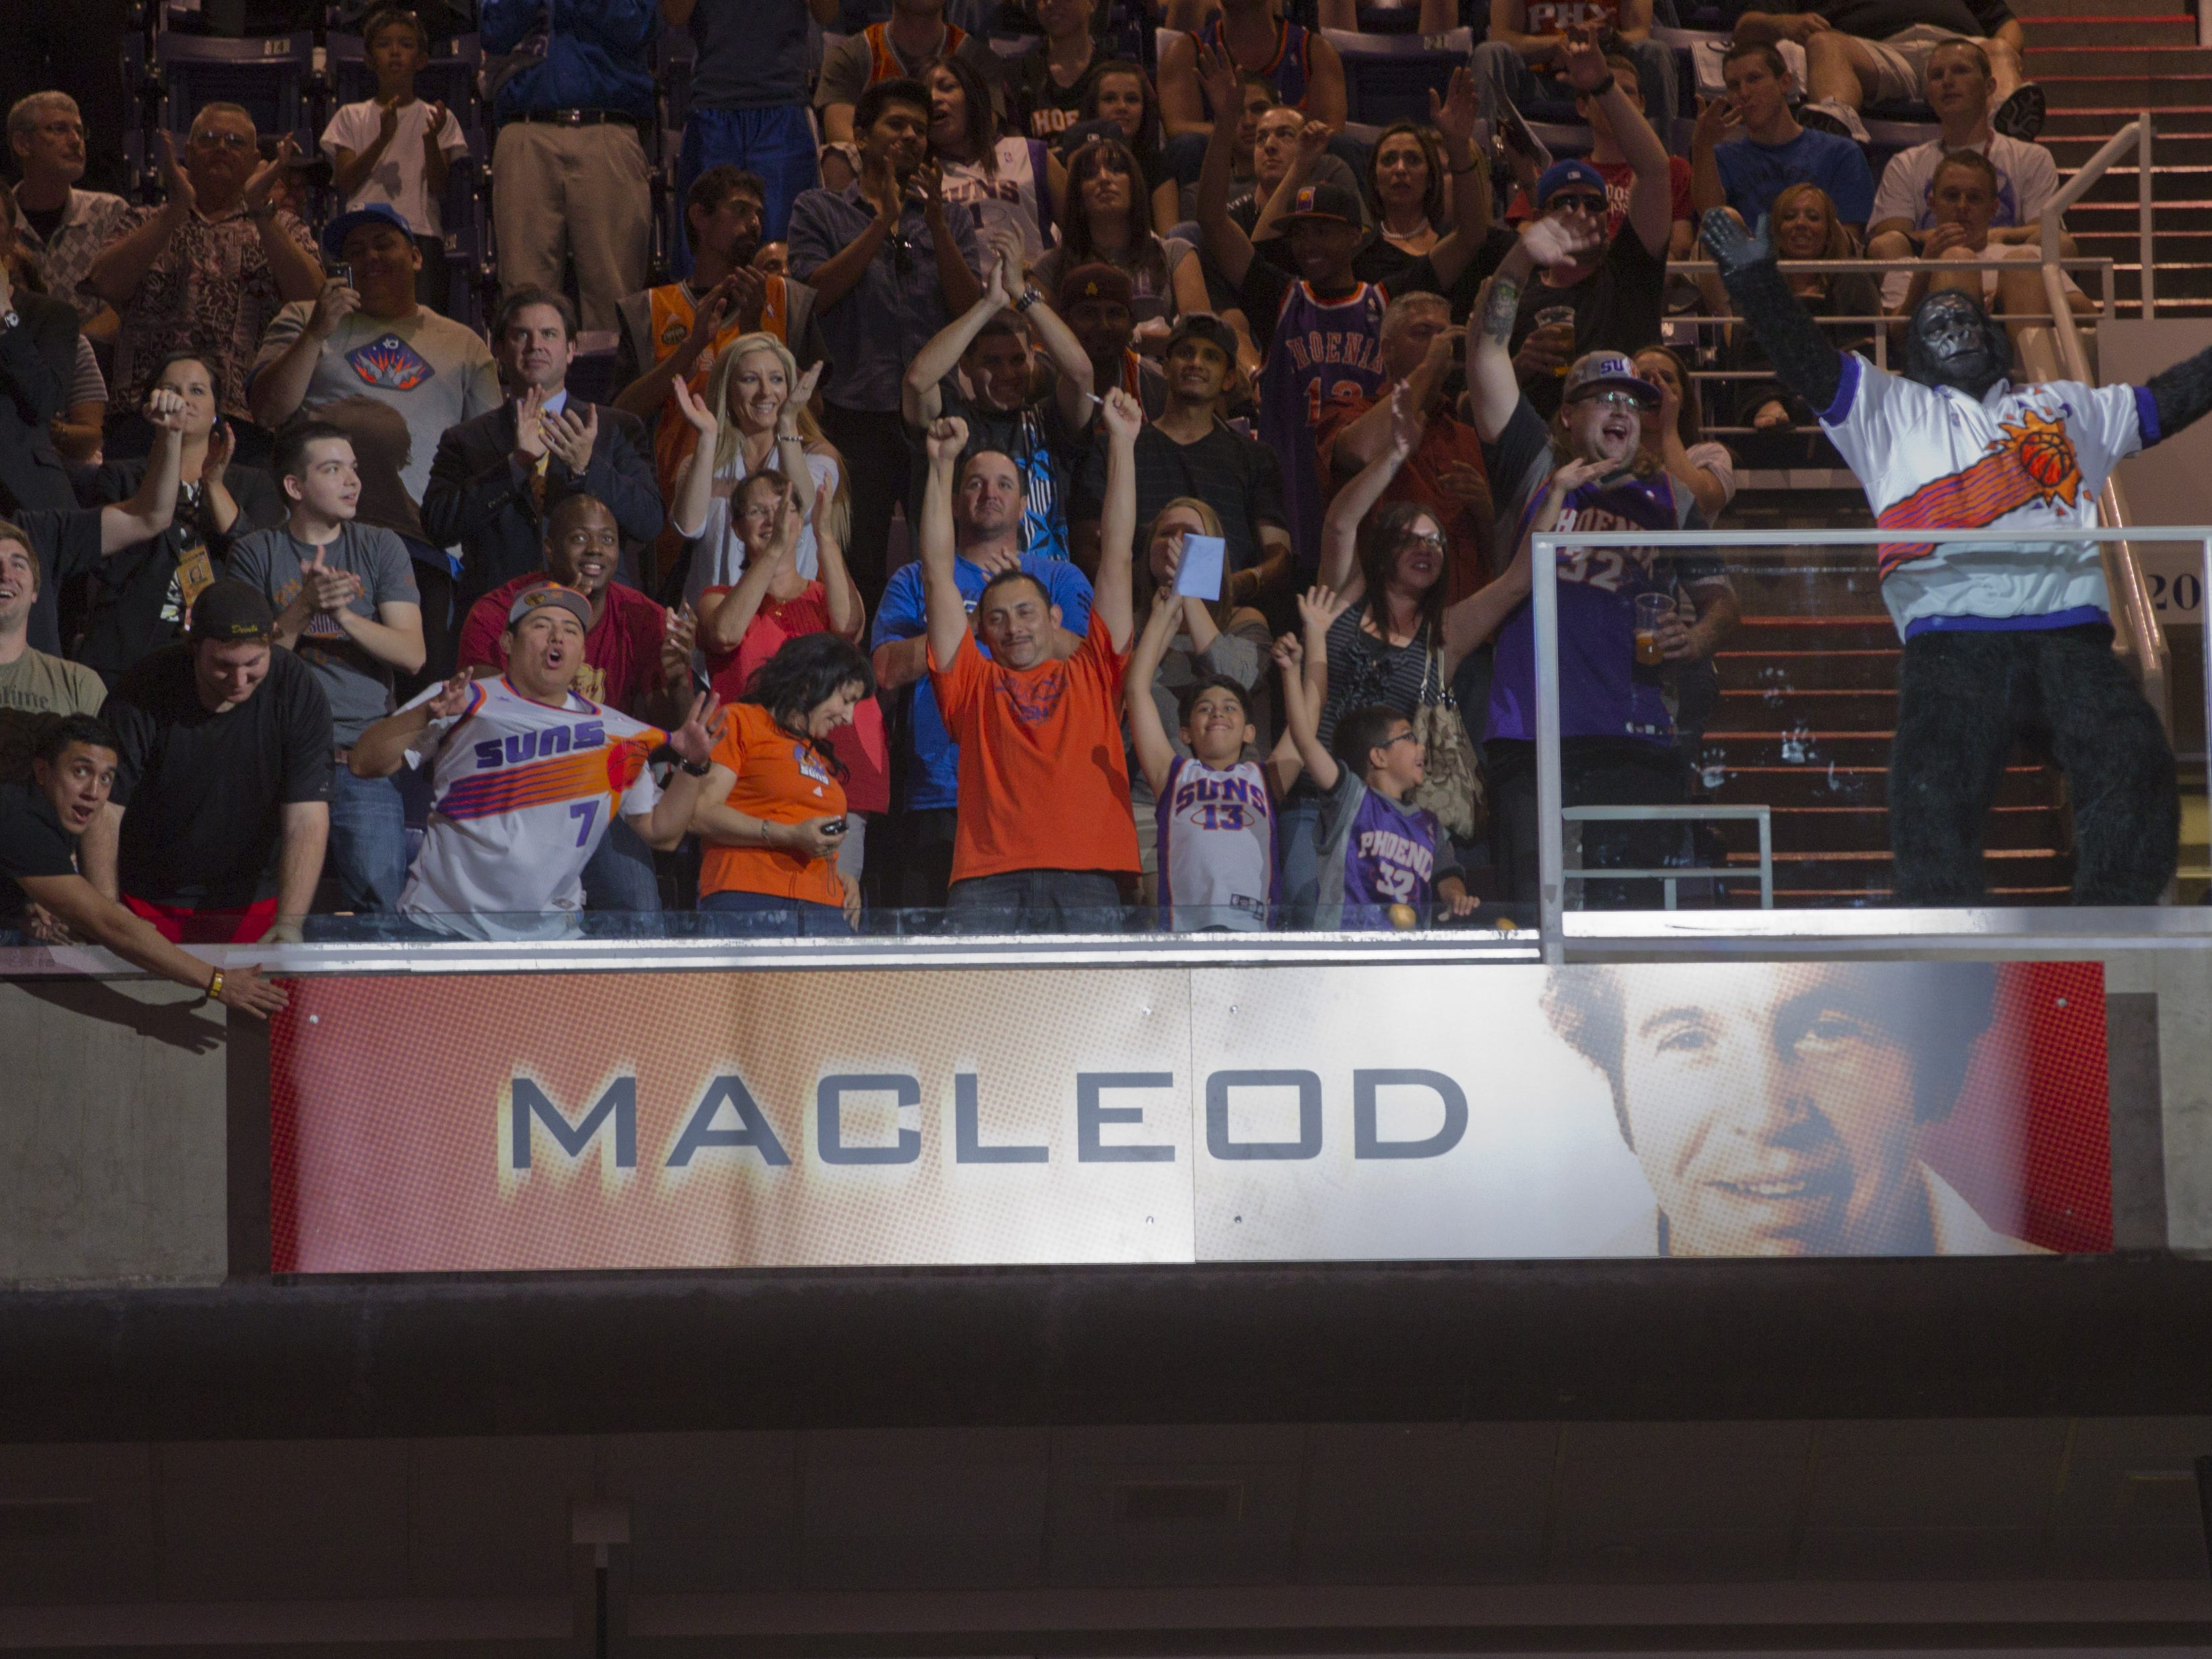 A banner is revealed for former Suns head coach John MacLeod during halftime induction ceremonies to the team's Ring of Honor in 2012.